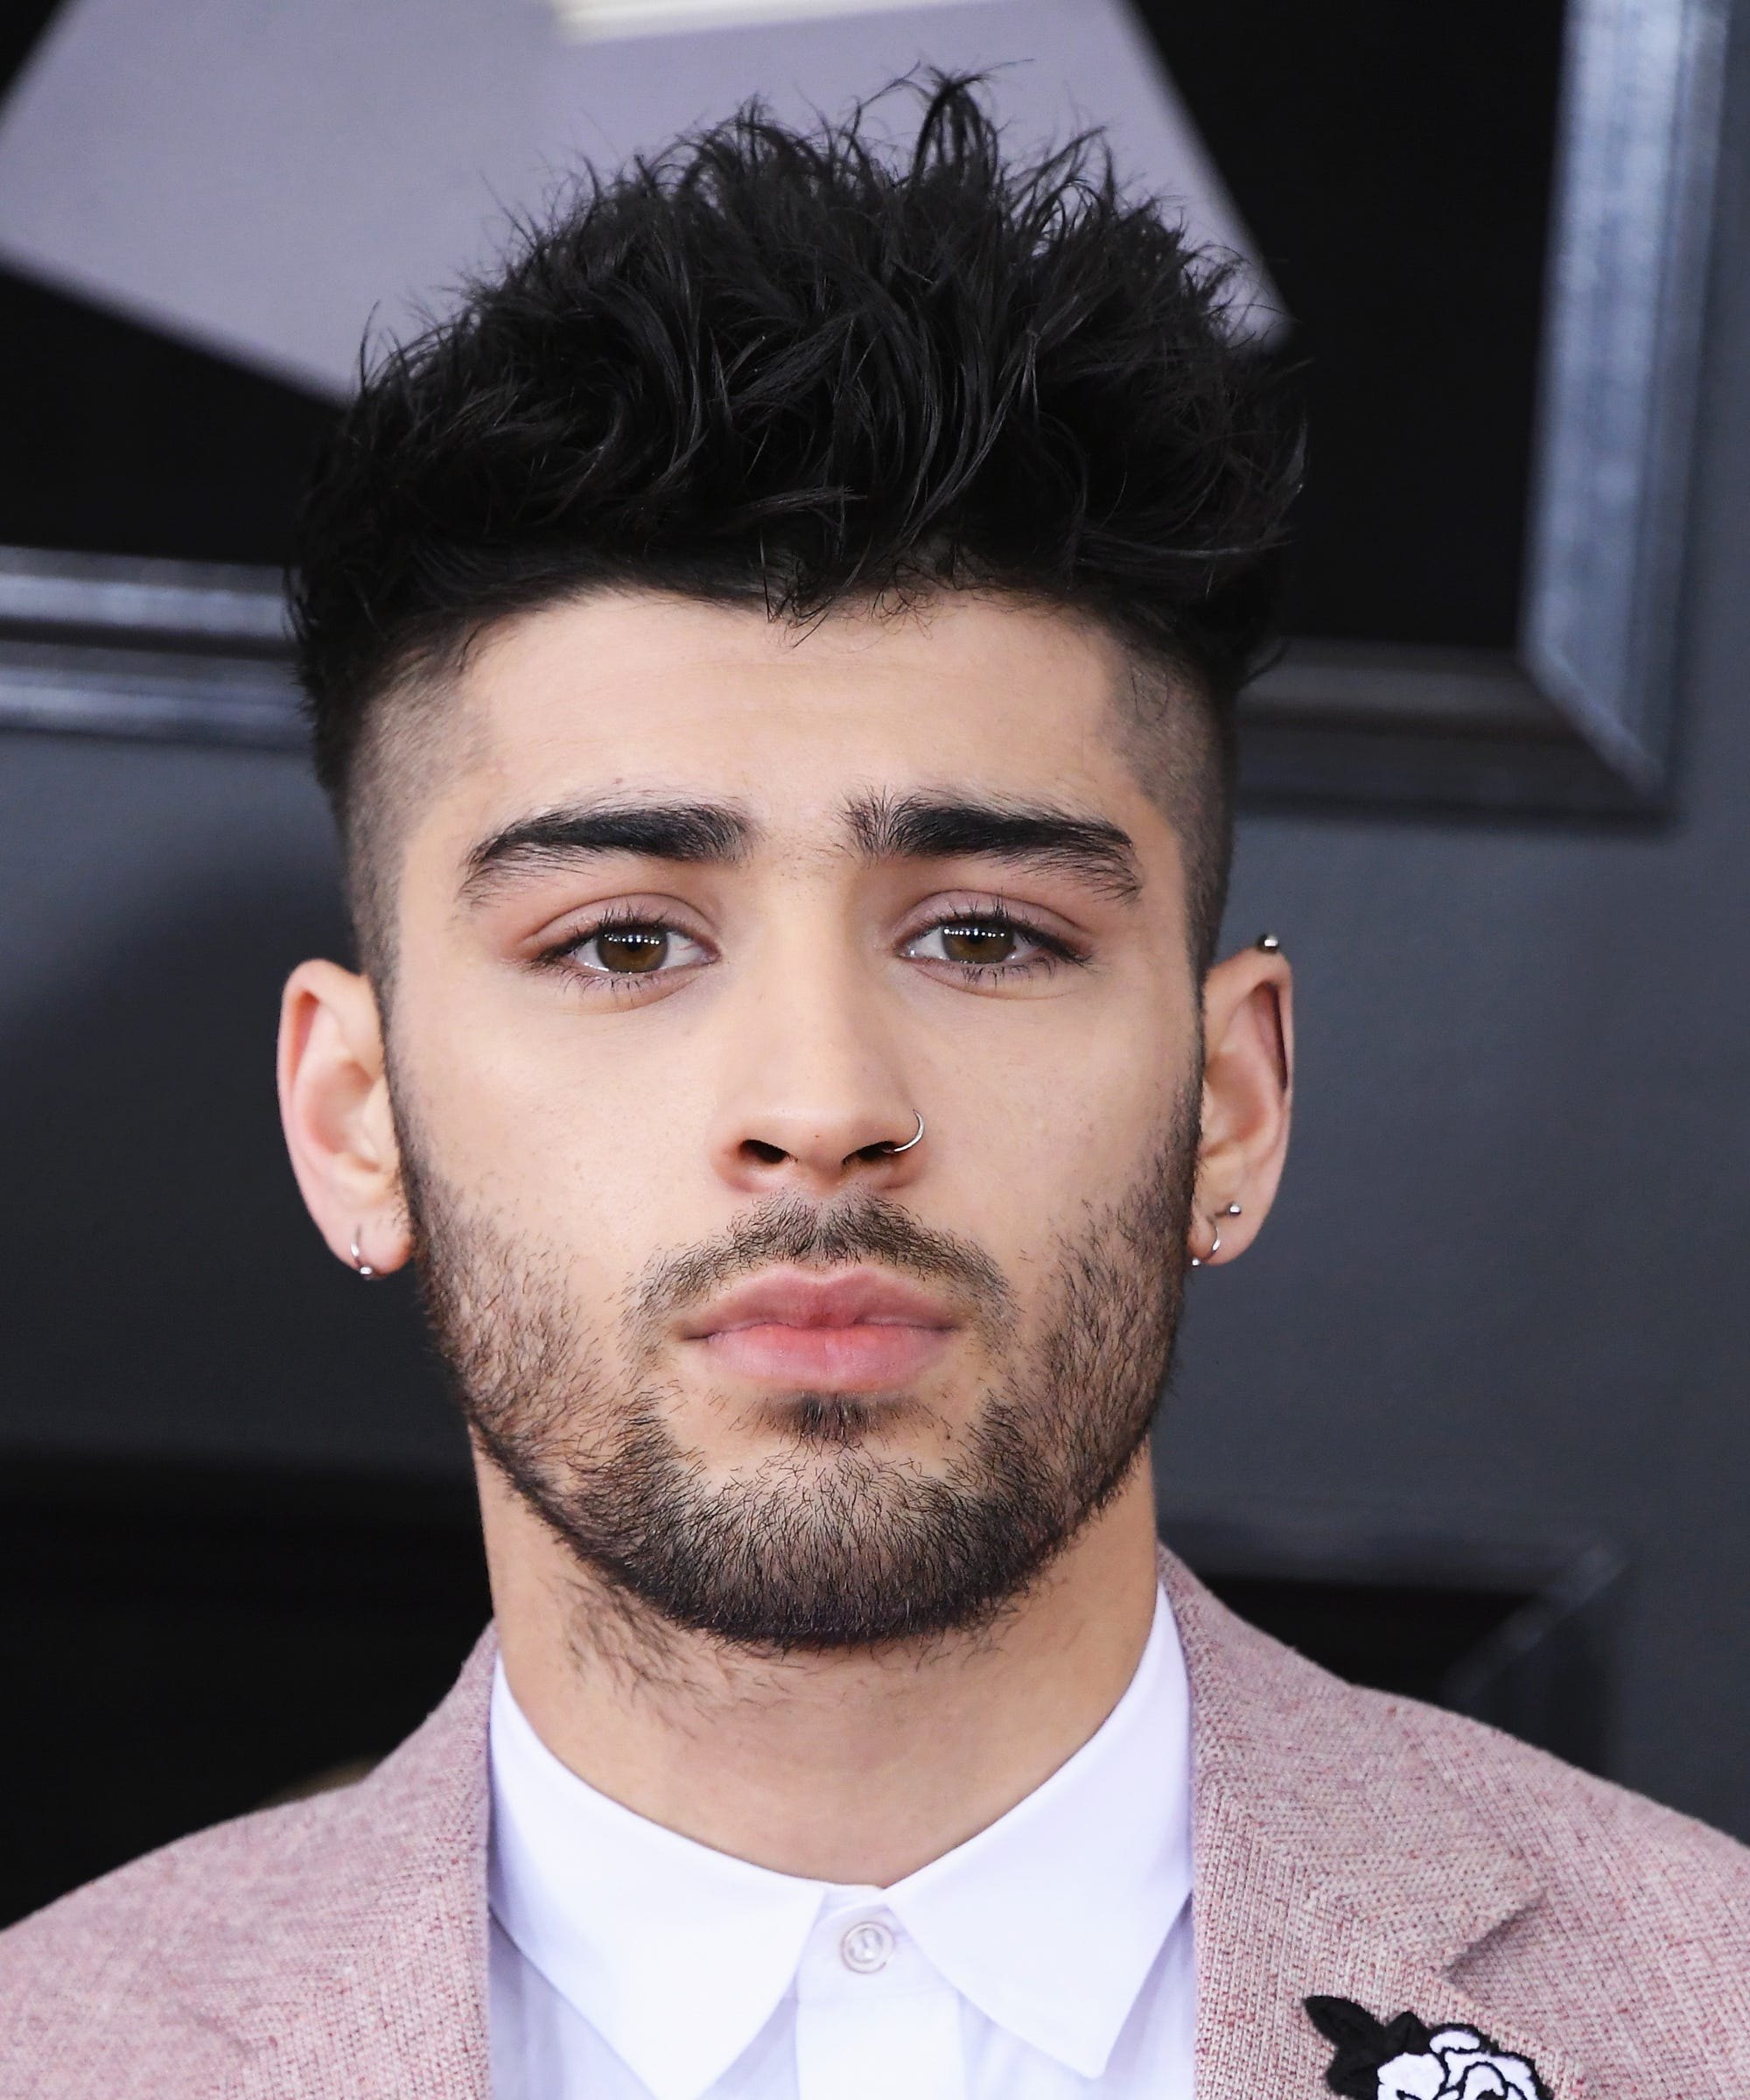 Zayn Malik Blonde Hair Beard After Gigi Hadid Breakup